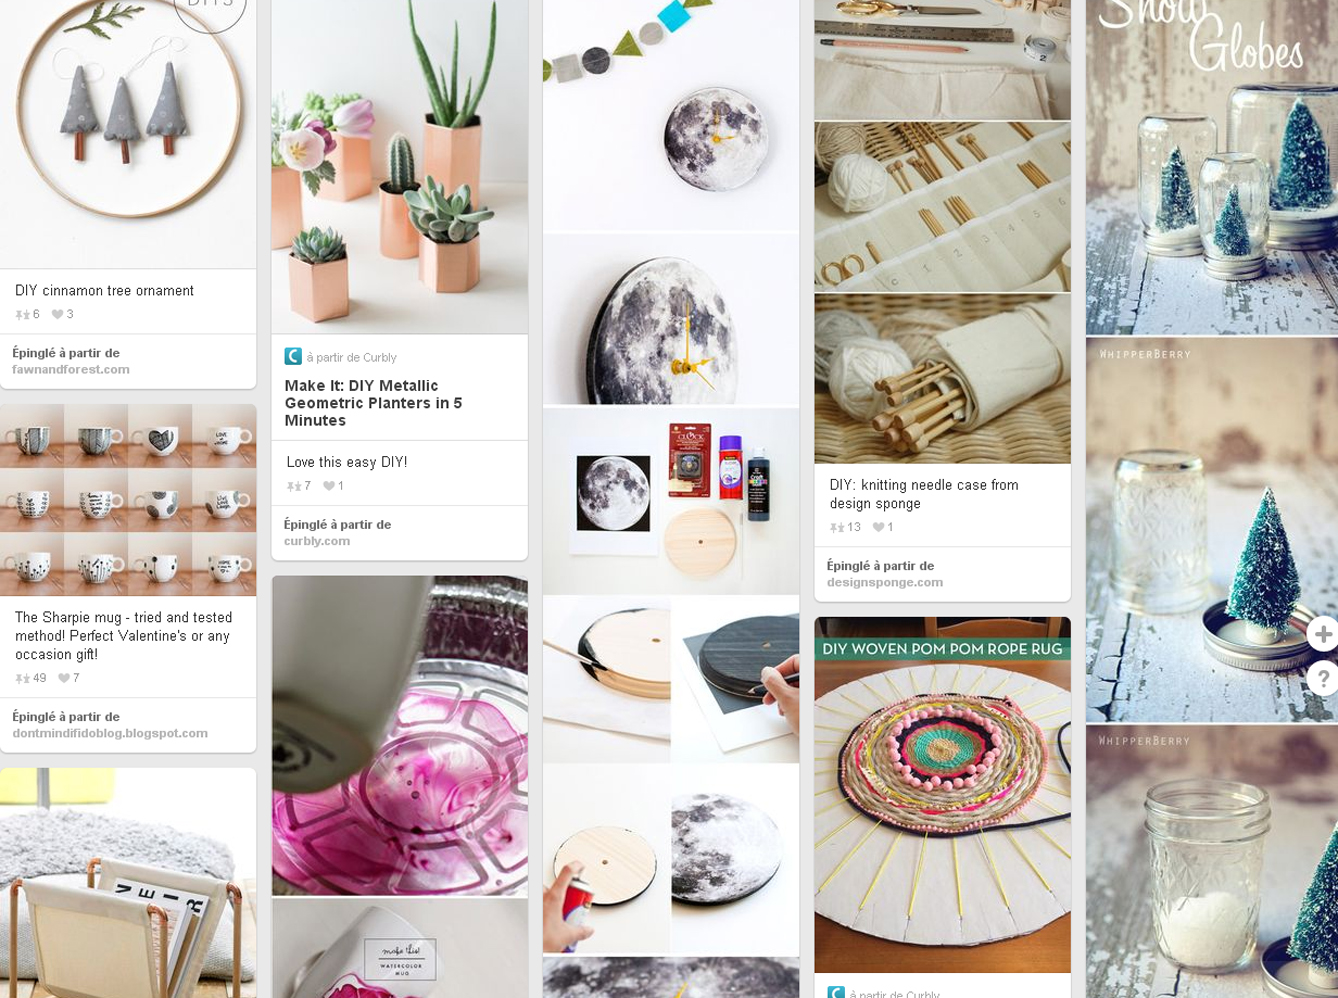 Diy les comptes pinterest conna tre absolument elle d coration for Pinterest deco maison